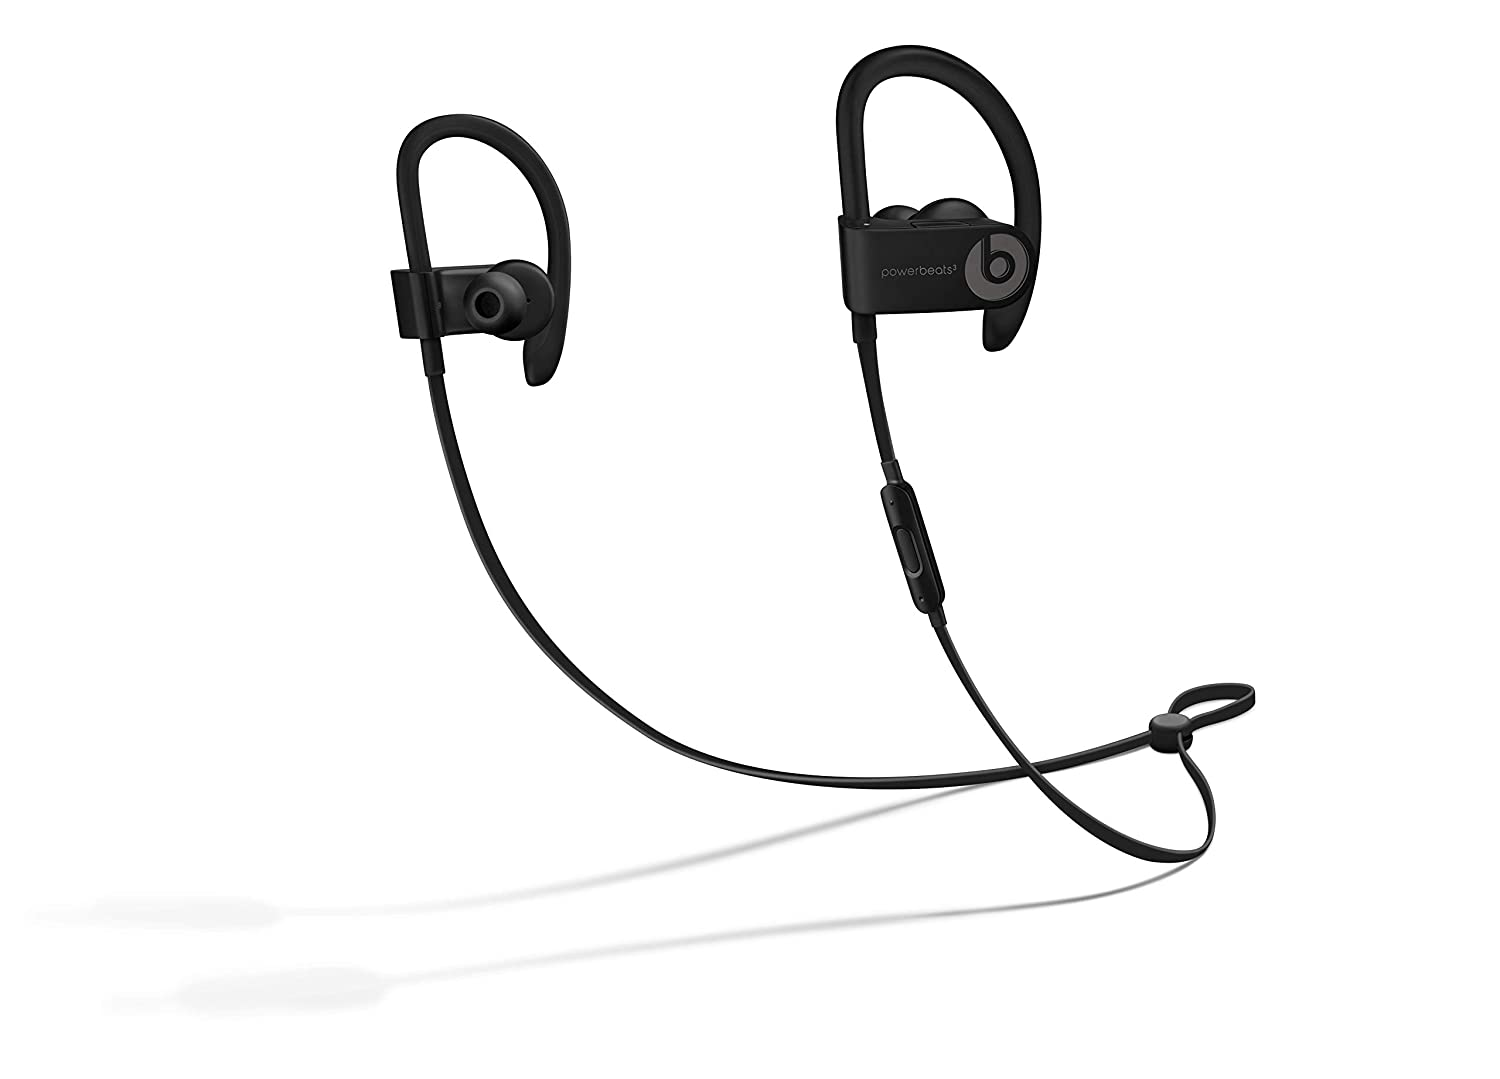 11cd6a4c6 Amazon.com  Powerbeats3 Wireless Earphones - Black